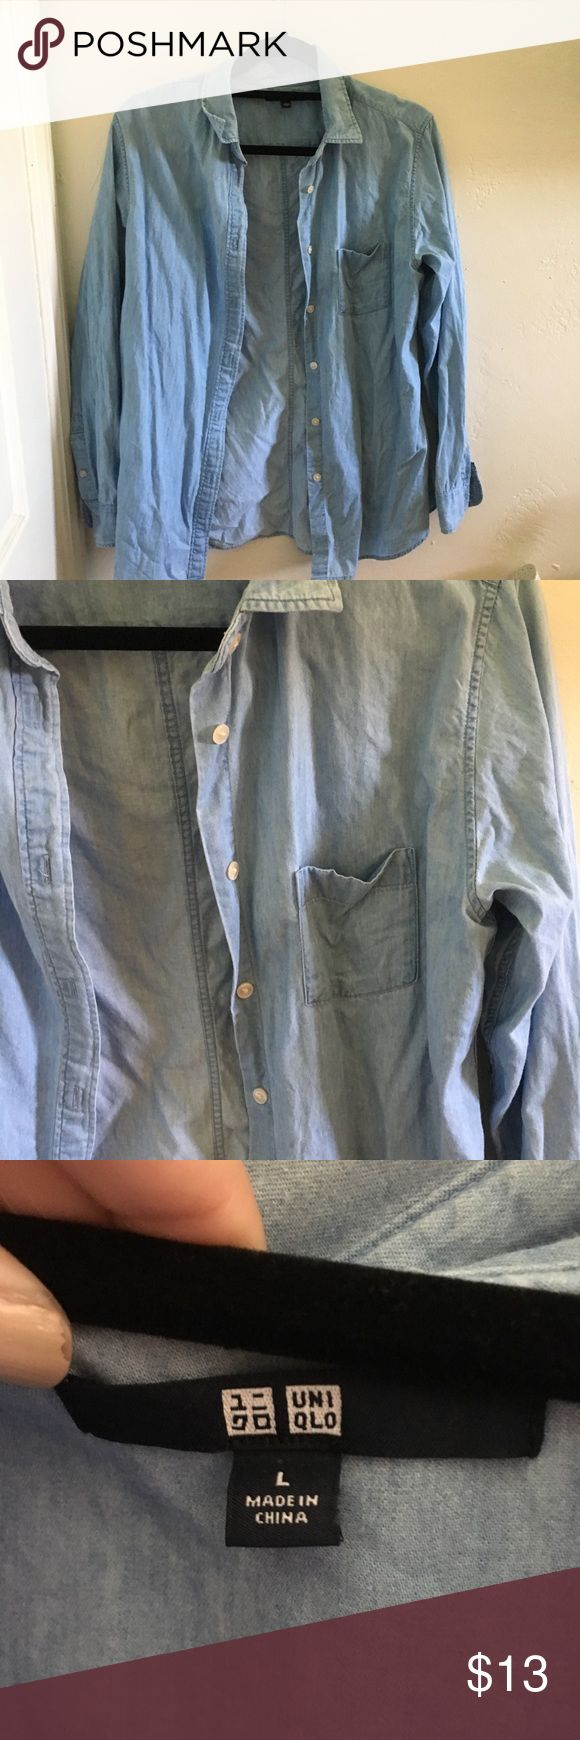 Uniqlo Denim Shirt This is a chambray denim shirt from the brand Uniqlo. It's in good condition! It has a spot that is very slightly faded (as pictured) but it's barely noticeable on. Let me know if you have any questions! Uniqlo Tops